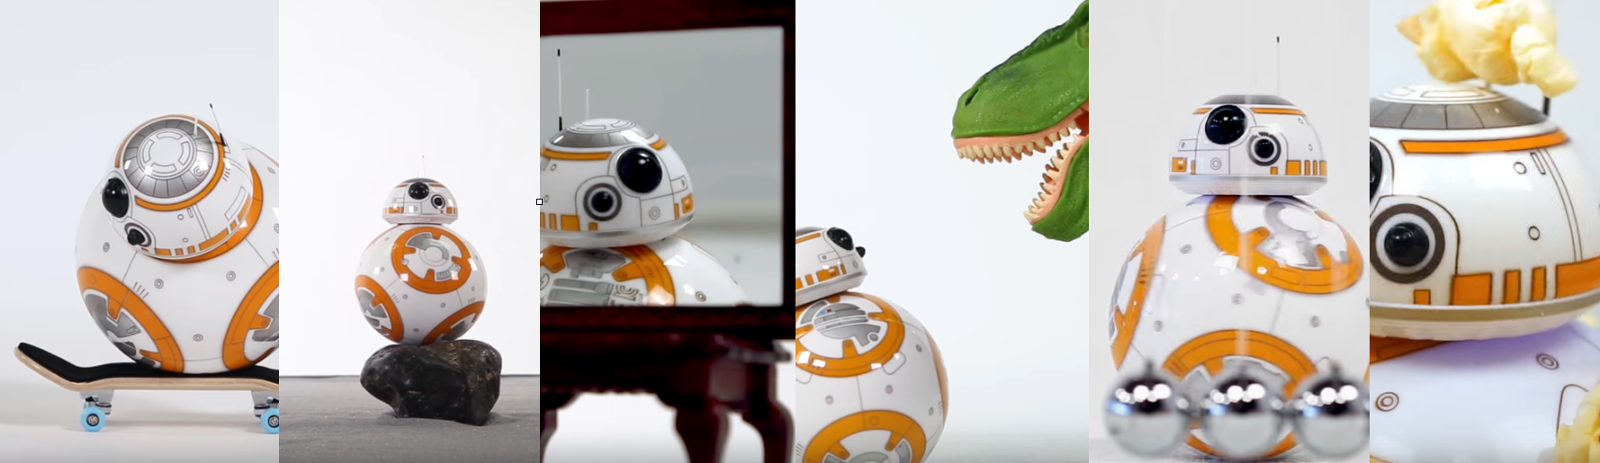 SPHERO, DISNEY / LUCASFILM-The Curious Adventures of BB-8